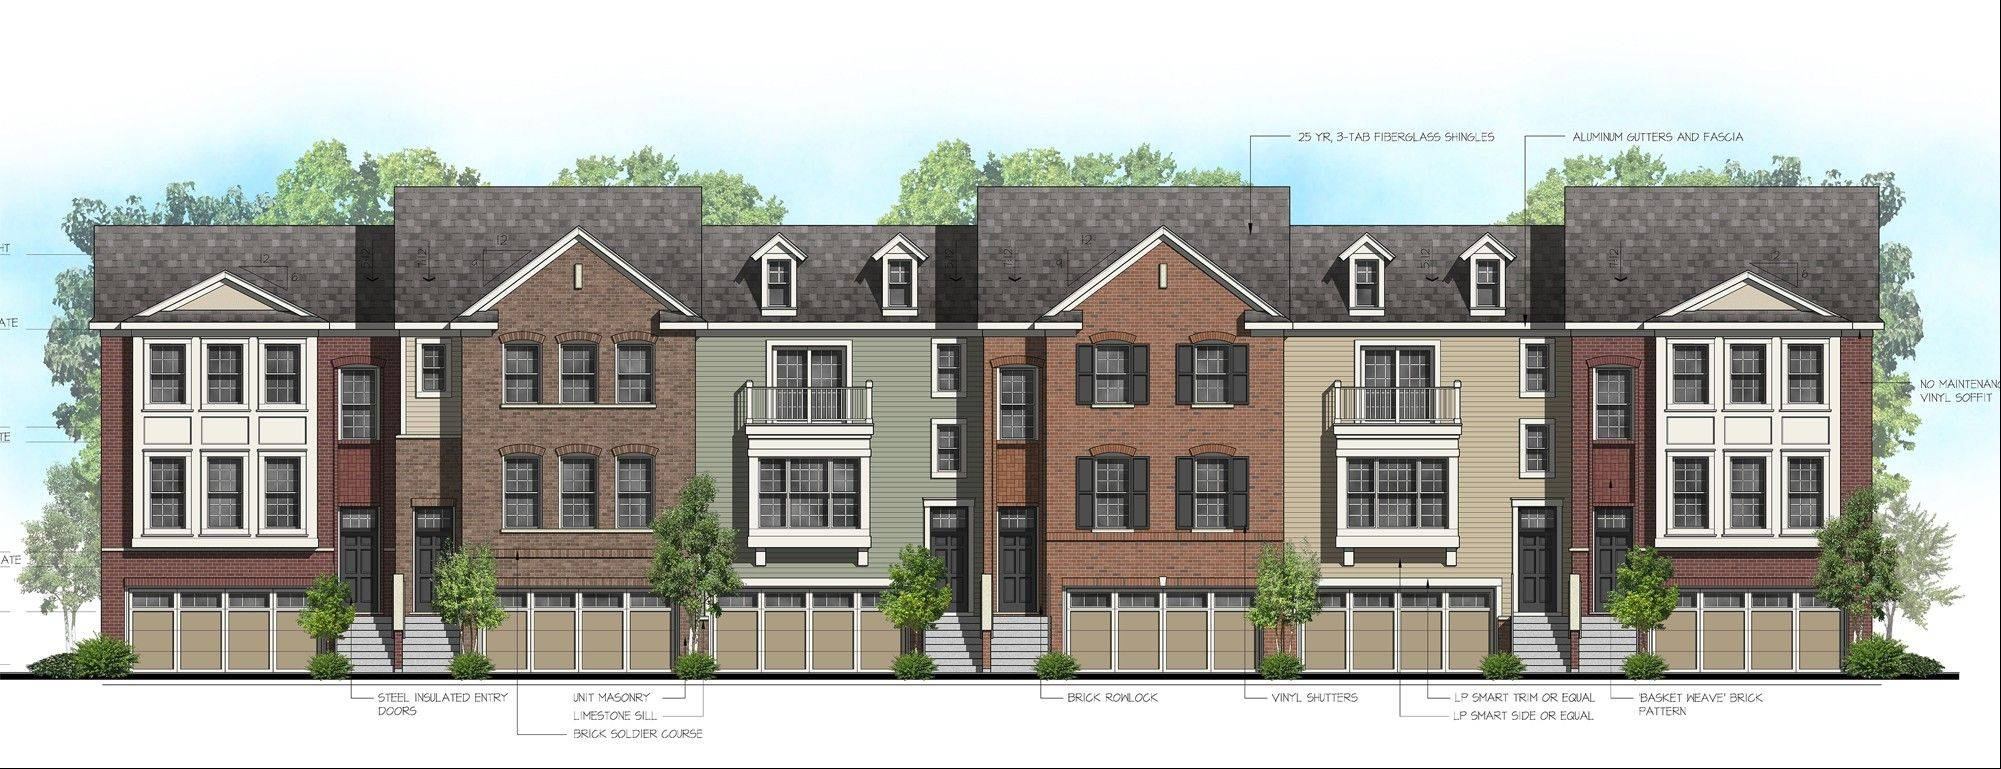 An architectural rendering of one of the row house buildings proposed for the 12-acre Pleasant Square residential development in Schaumburg. The project, which also includes a park, single-family homes and townhouses, received several village approvals this week.